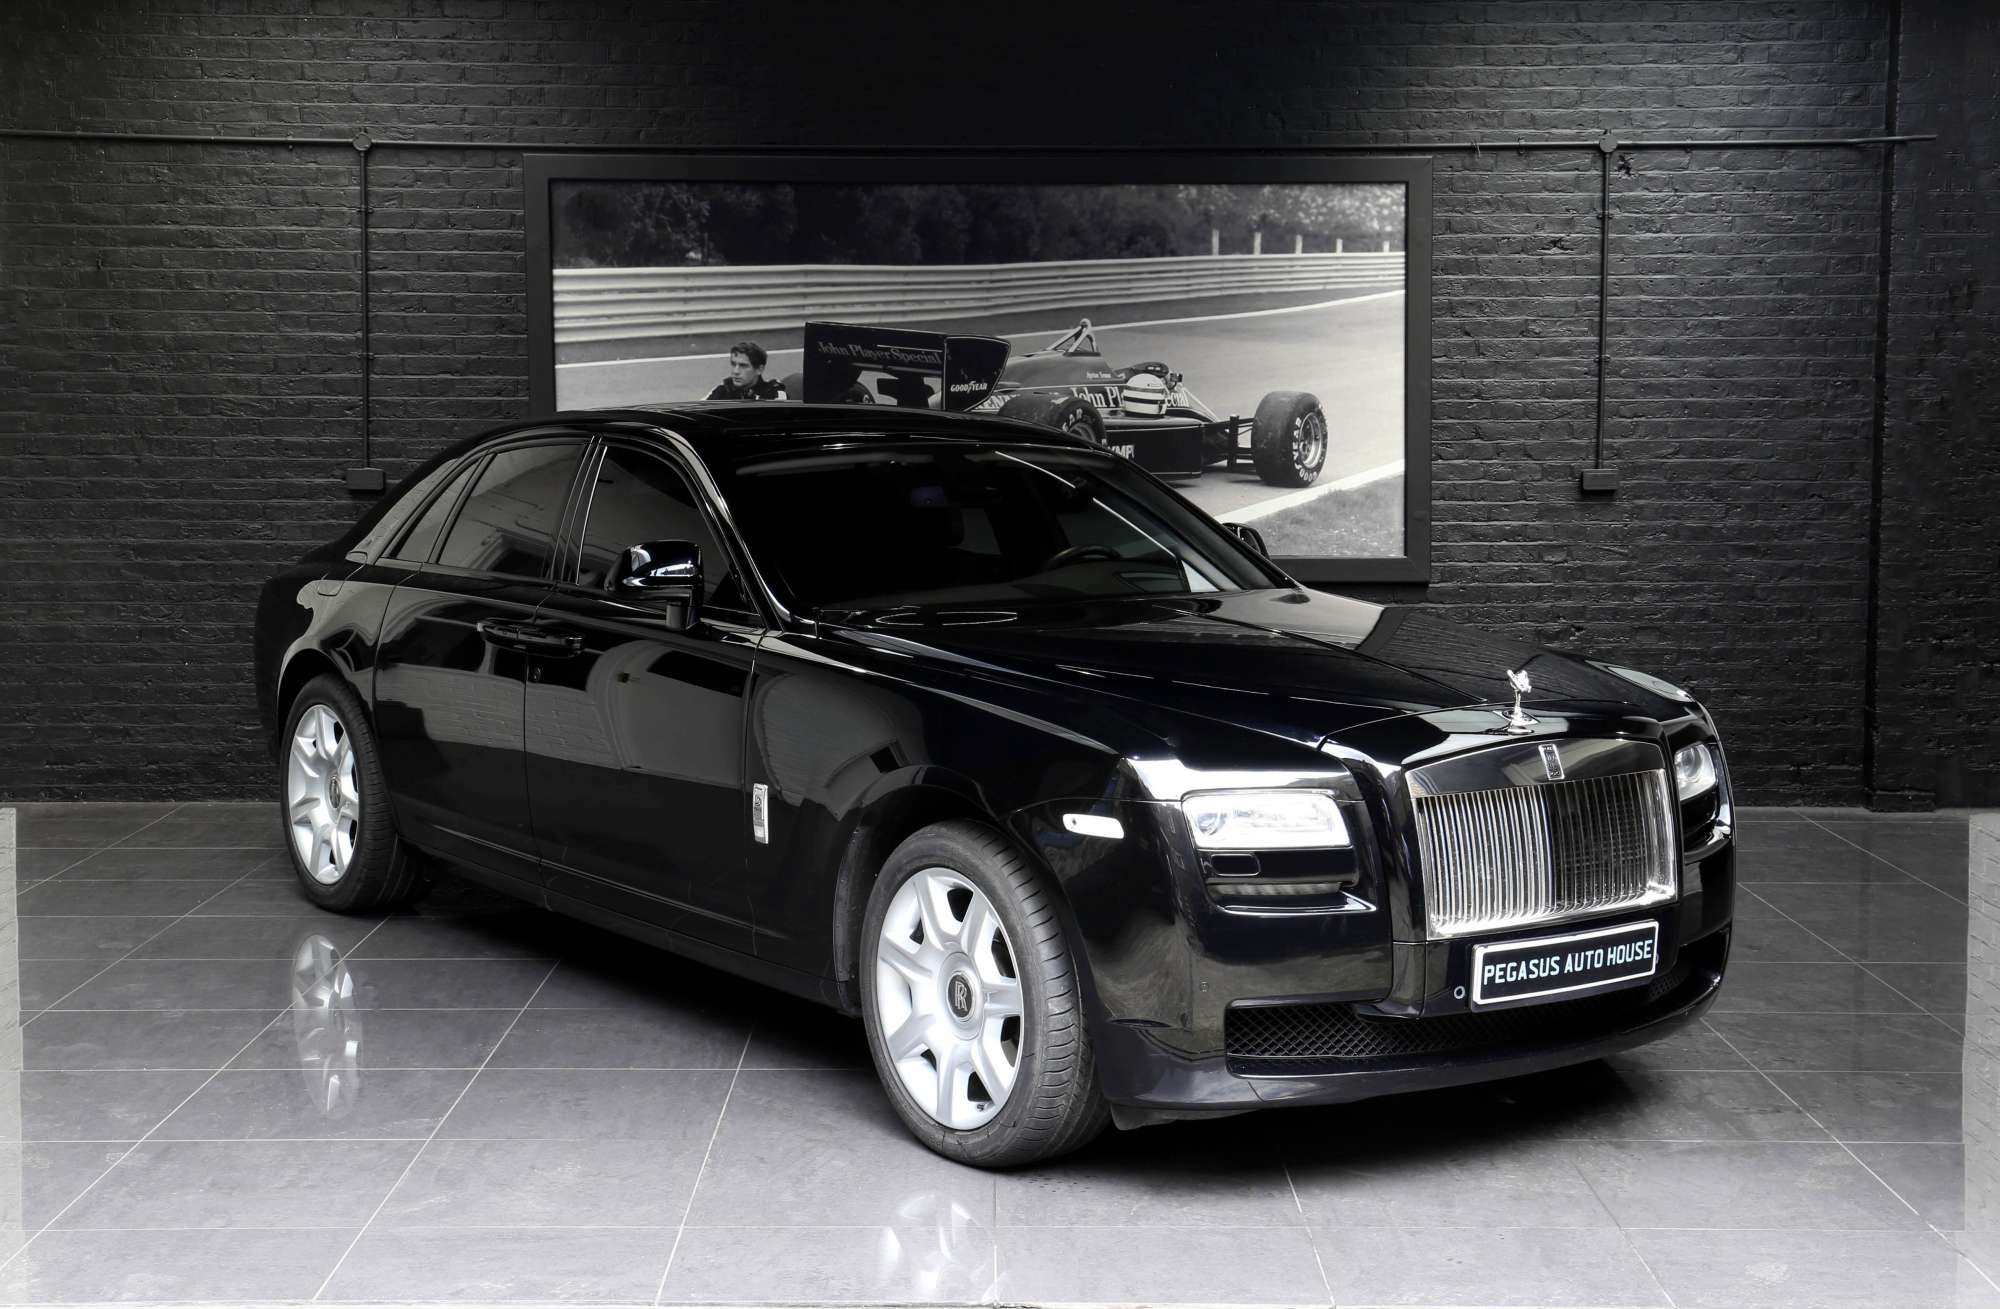 rolls royce ghost pegasus auto house. Black Bedroom Furniture Sets. Home Design Ideas